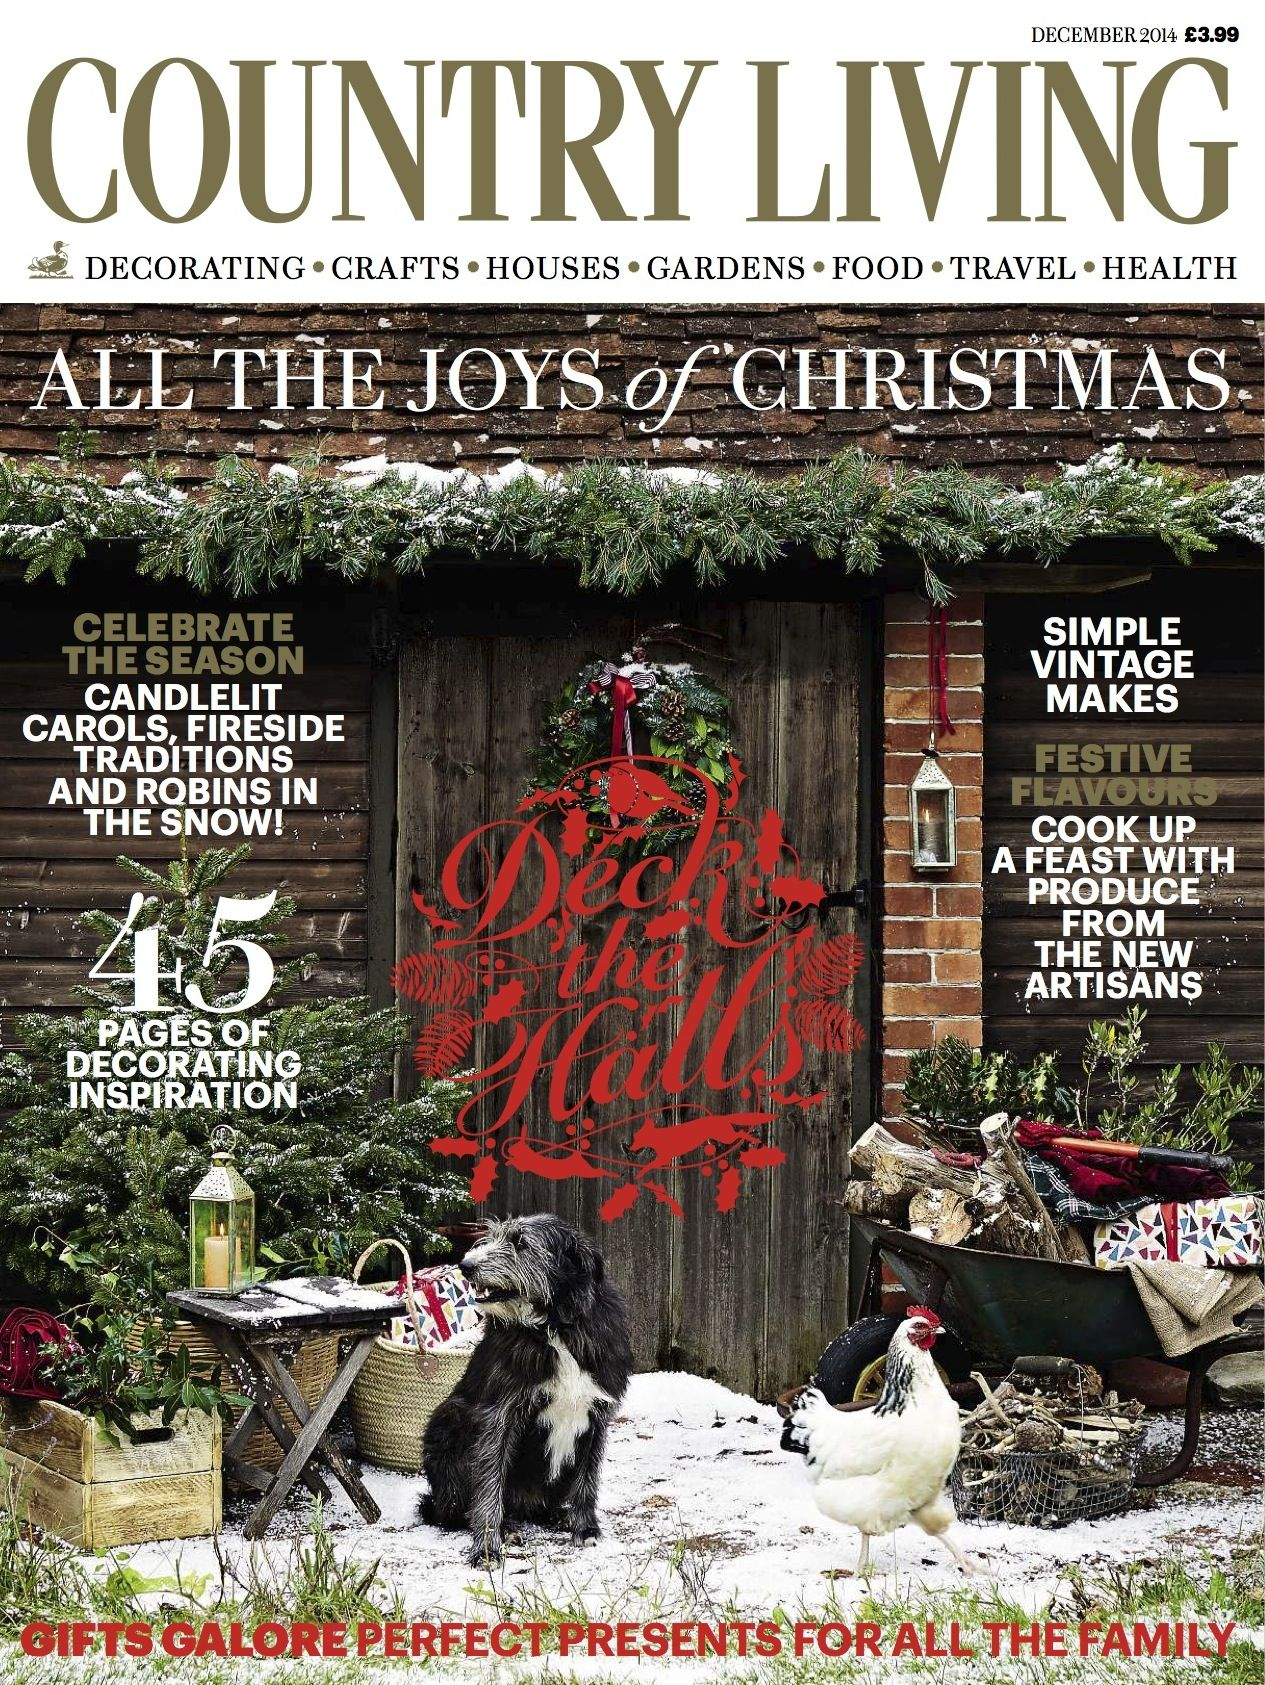 Country Living Magazine December 2014 Cover Luxury